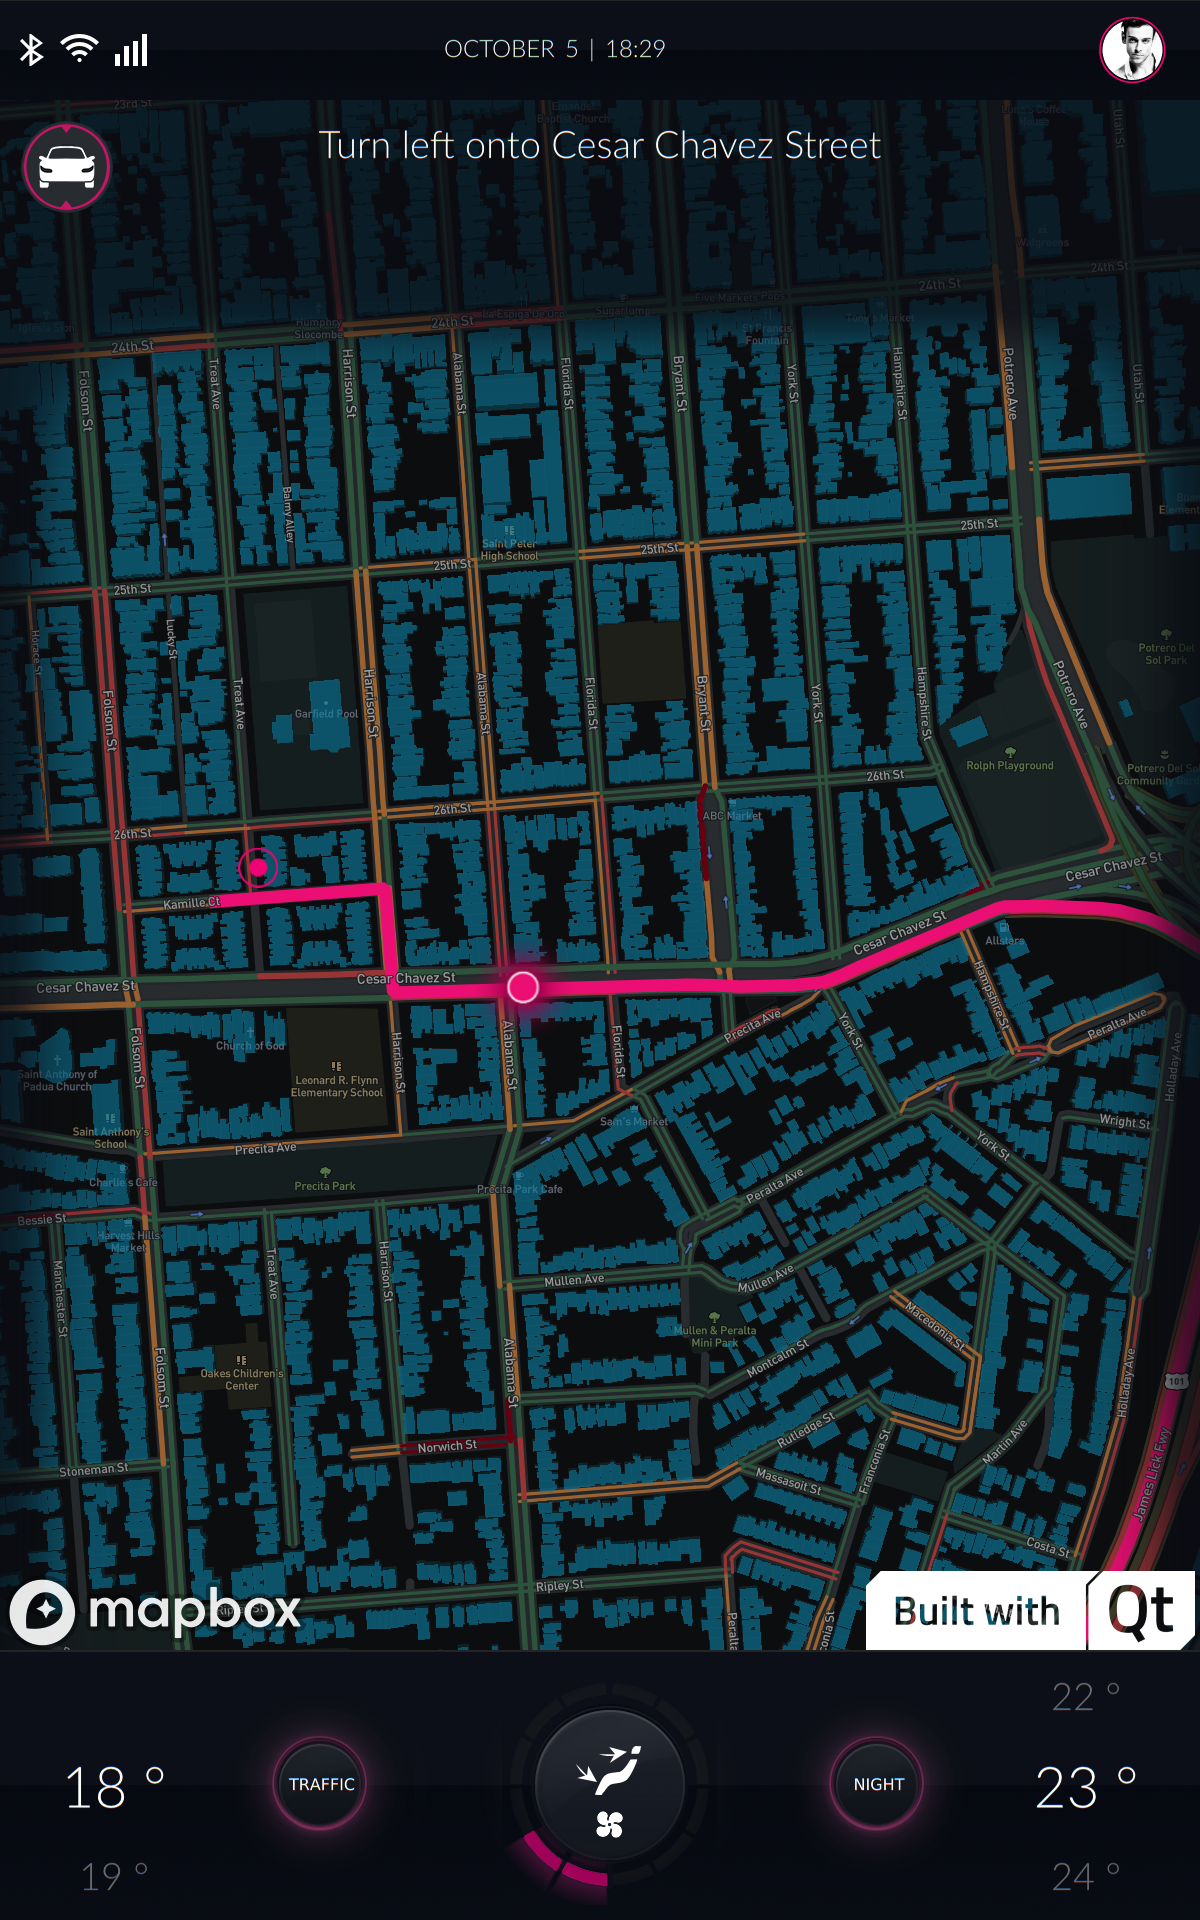 Plug our maps into your Qt applications - Points of interest